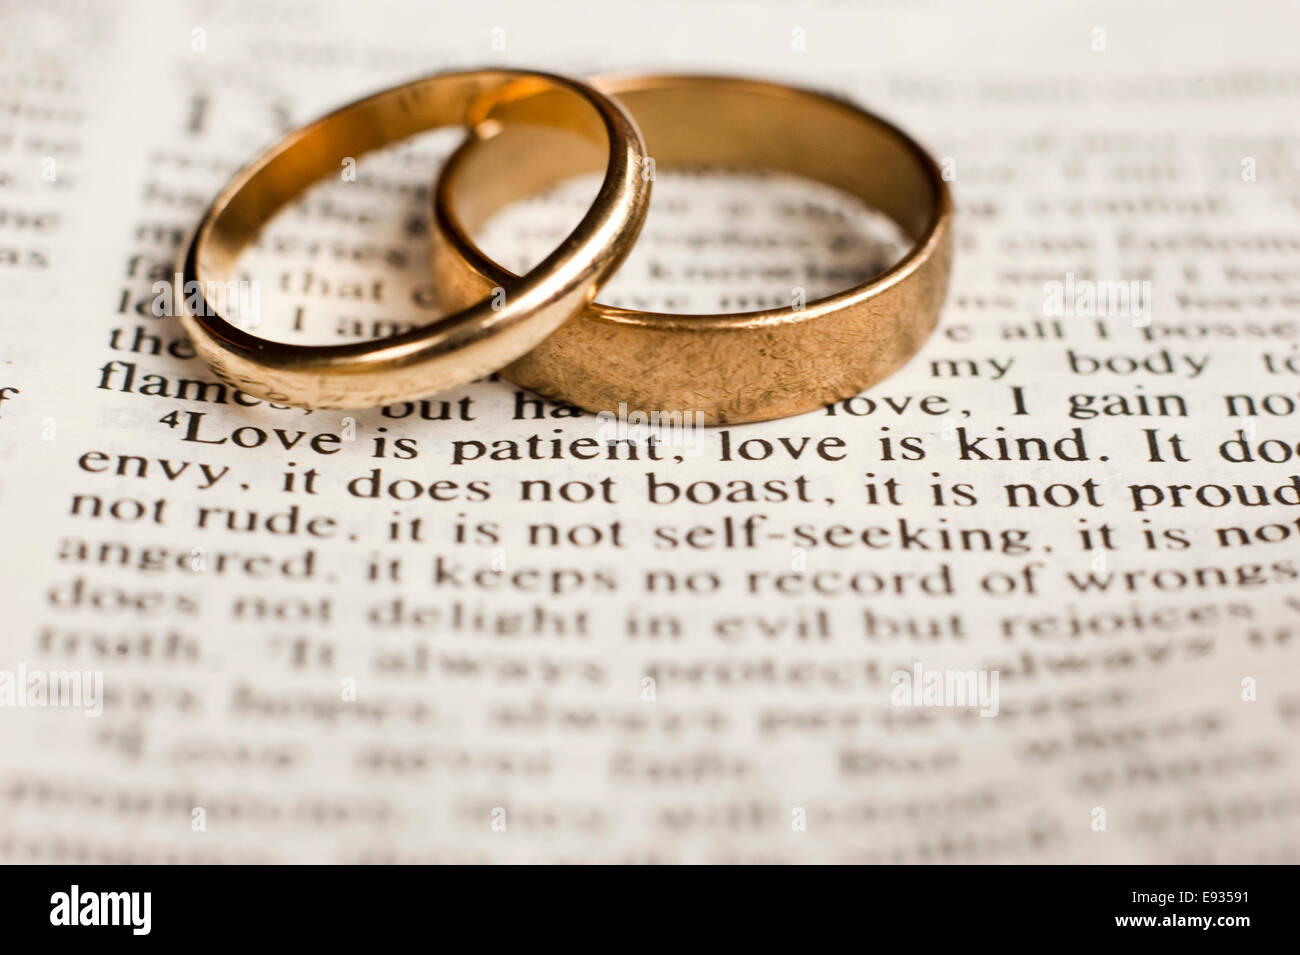 rings wedding is and god faithful love just verses bible mercy scripture steadfast pin hosea in